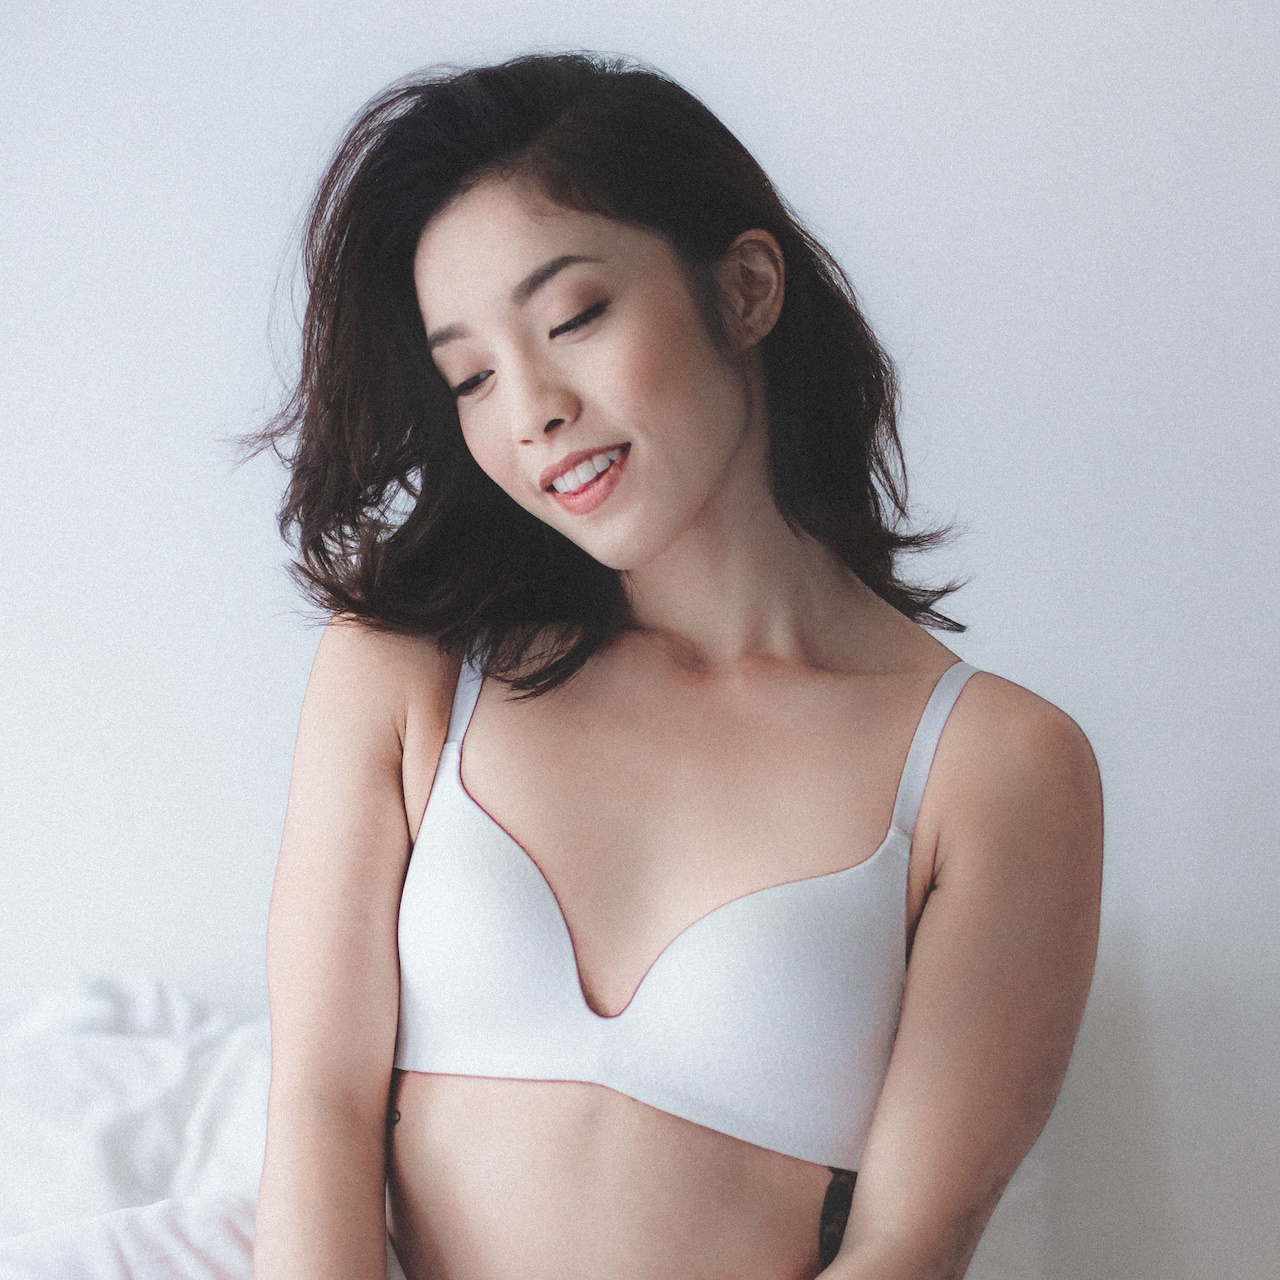 e84965414f06f Wireless - Feather Light - Soft Breathable Fabric - Stretchable Bands -  Adjustable Shoulder Straps - Padded Super Soft Bra Cups